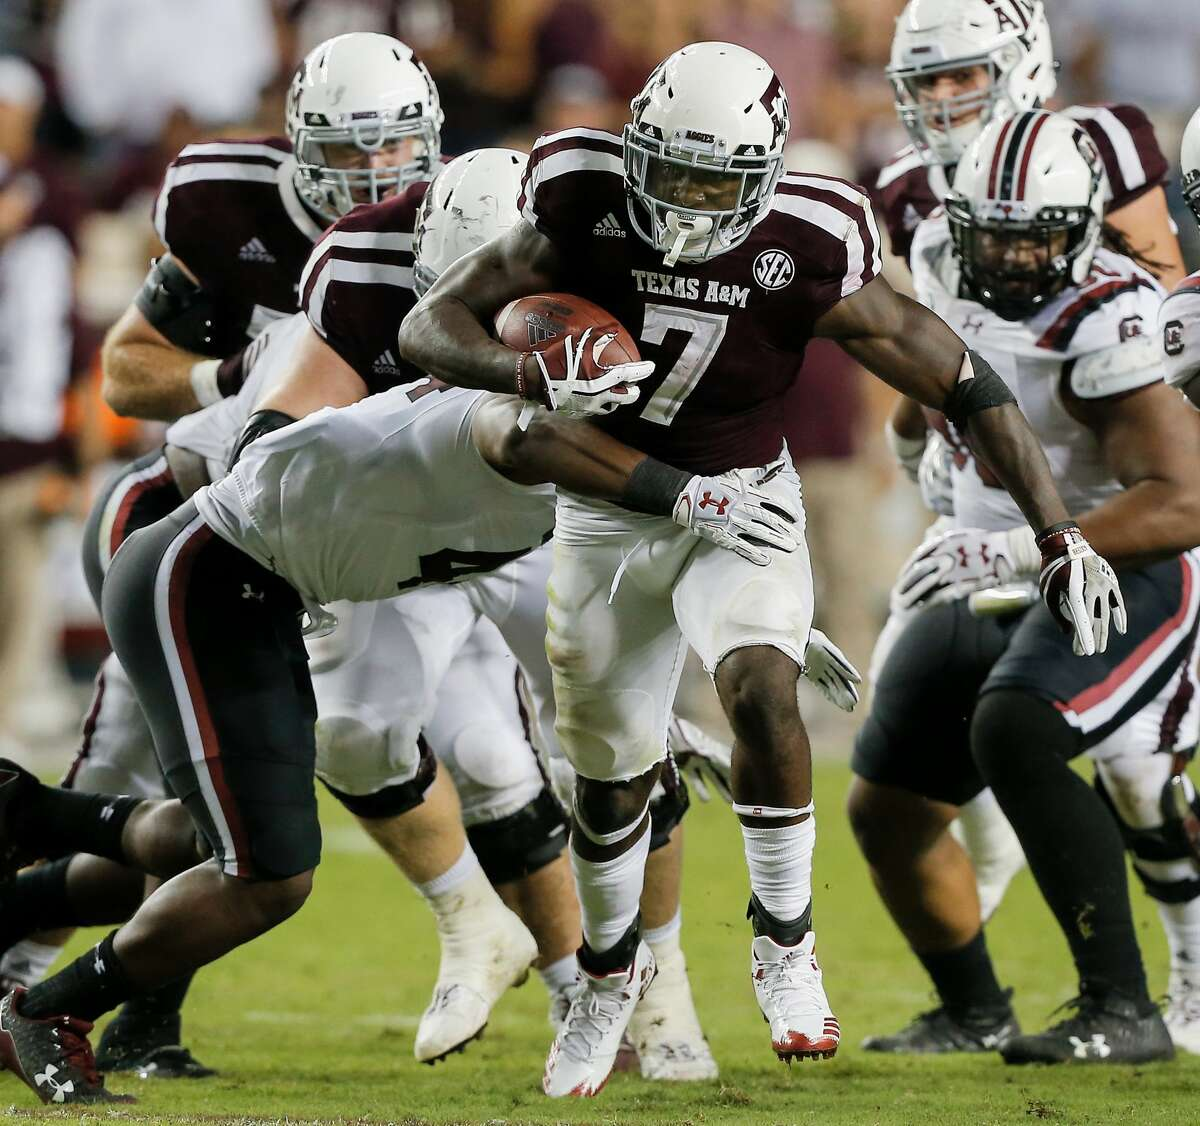 COLLEGE STATION, TX - SEPTEMBER 30: Keith Ford #7 of the Texas A&M Aggies rushes past Bryson Allen-Williams #4 of the South Carolina Gamecocks in the fourth quarter at Kyle Field on September 30, 2017 in College Station, Texas. (Photo by Bob Levey/Getty Images)